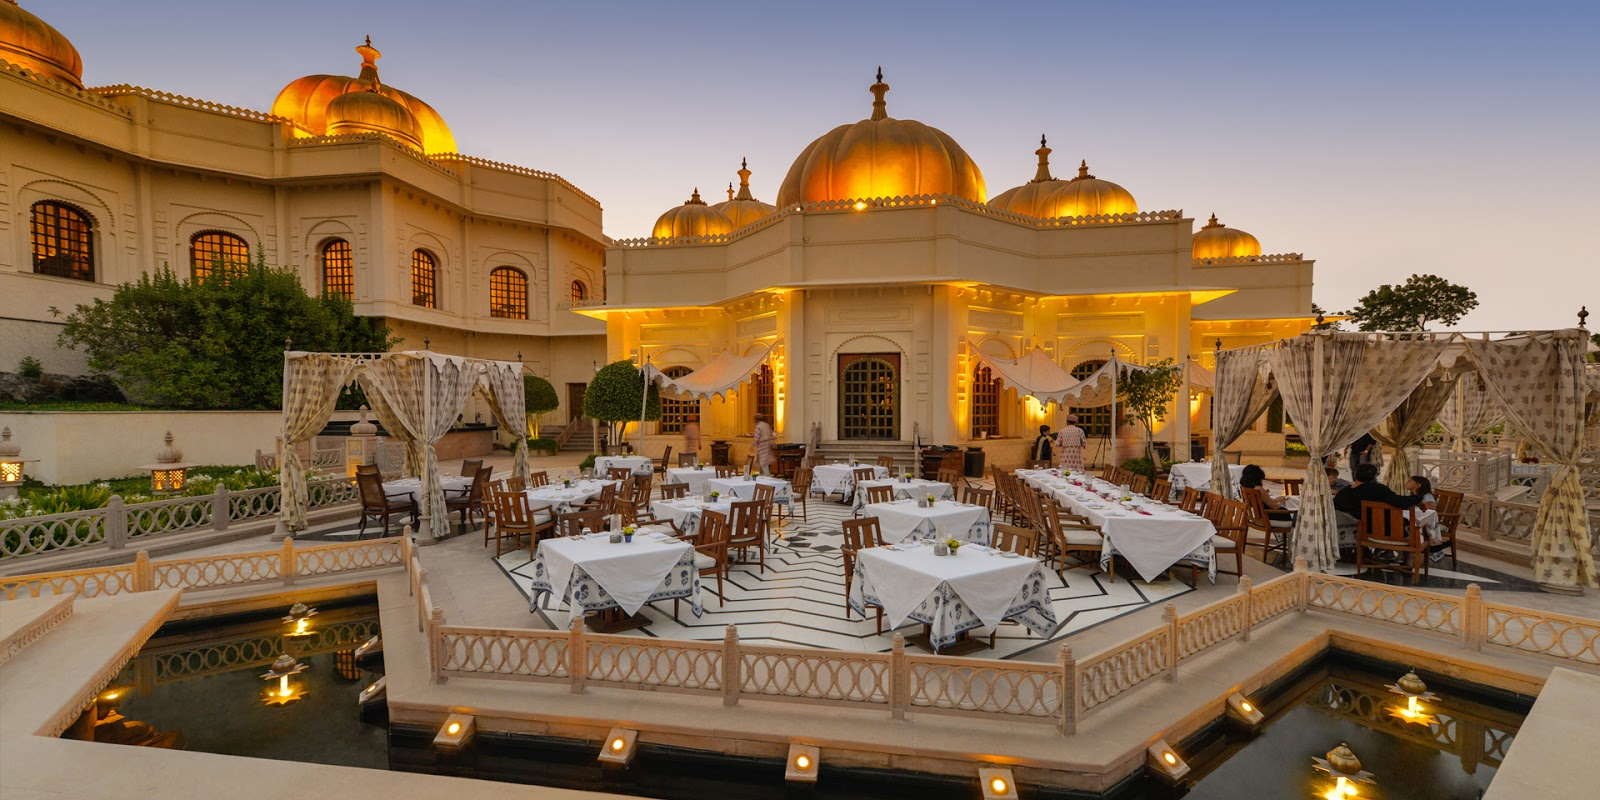 best wedding planner in udaipur, cost of wedding udaipur, palace wedding Rajasthan, wedding planner in udaipur, palace wedding in udaipur, jaipur